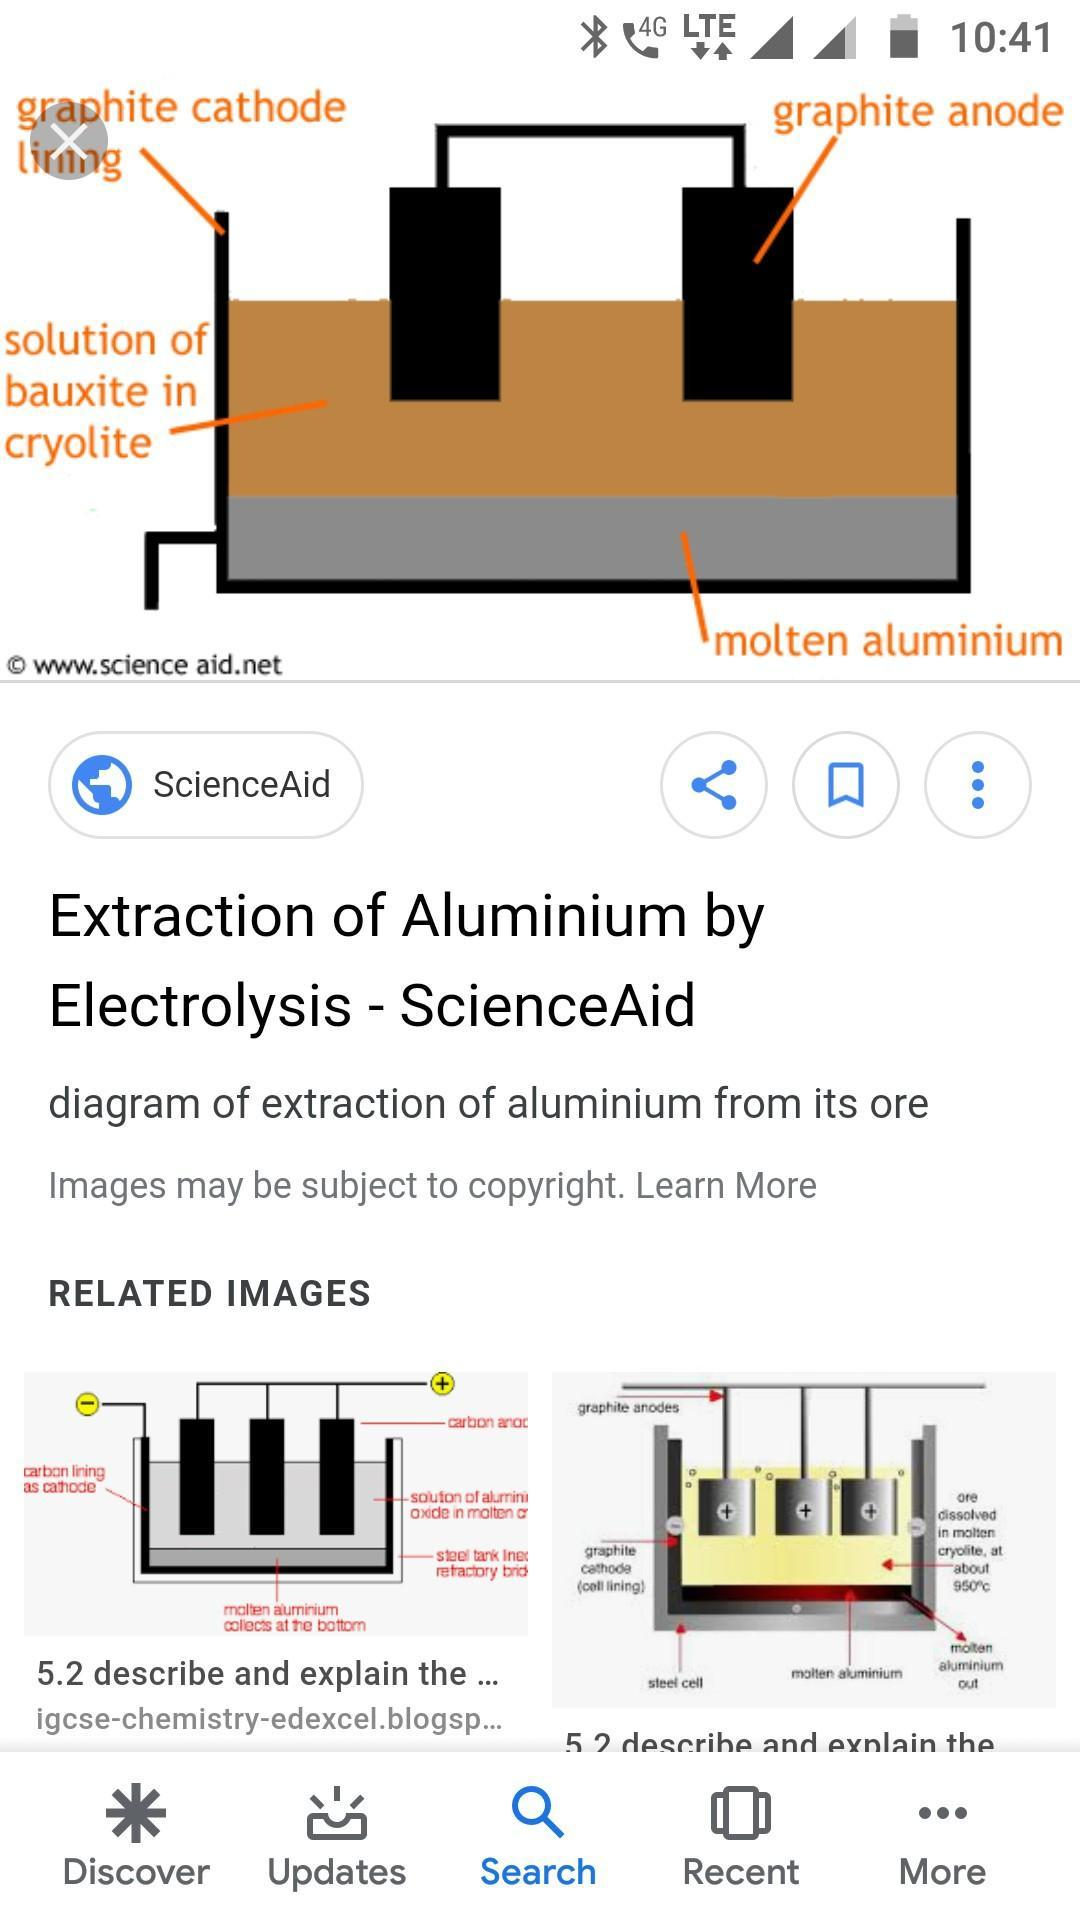 Discuss the electrolysis process to get aluminium from